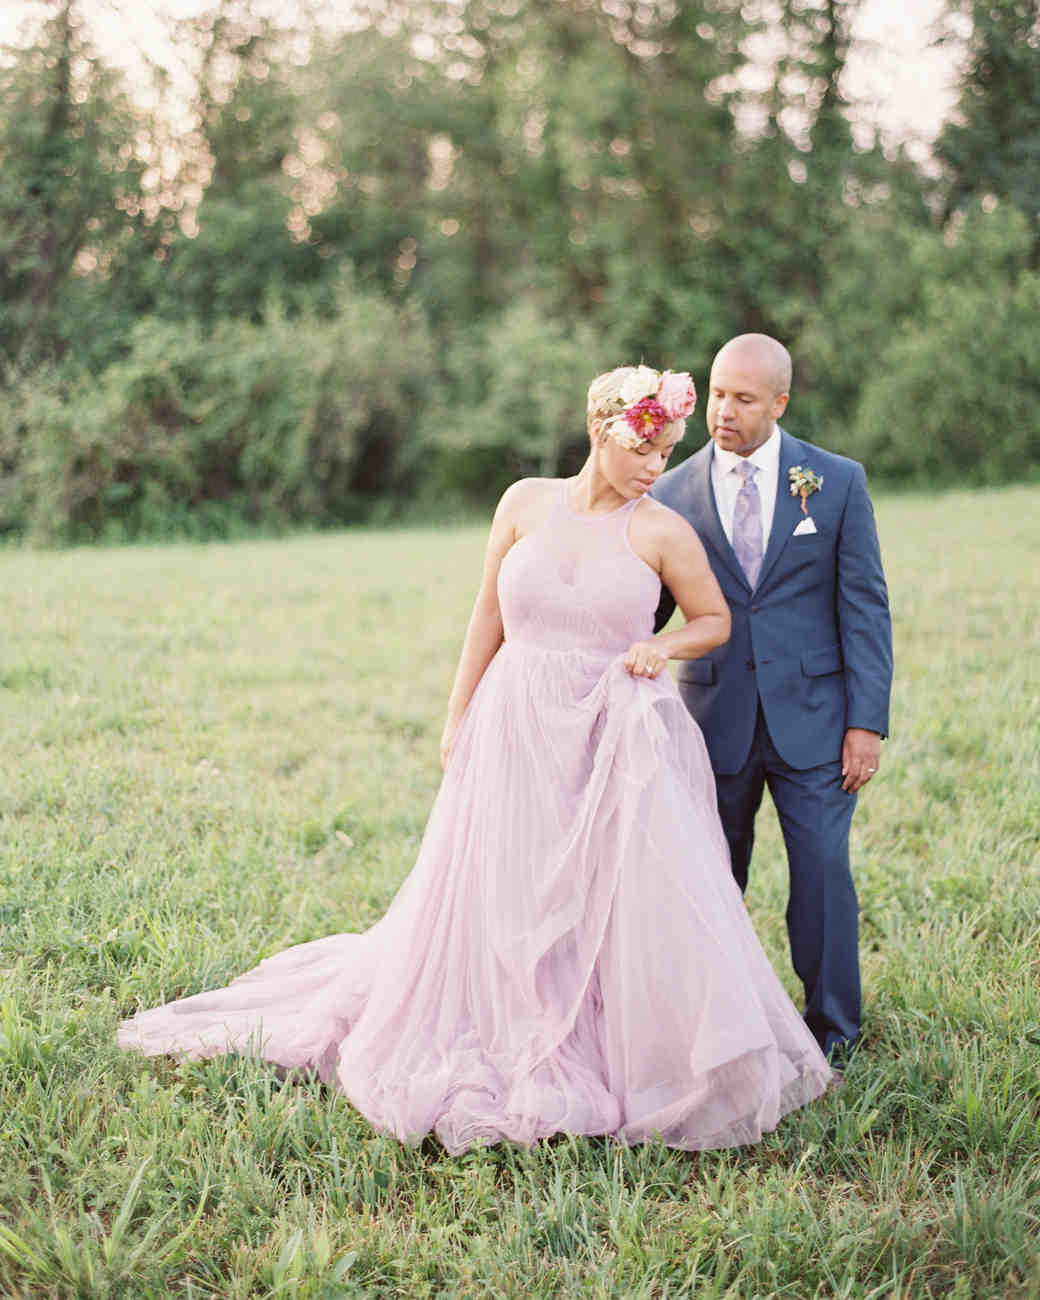 Colorful Wedding Dresses: Colorful Dresses From Real Weddings